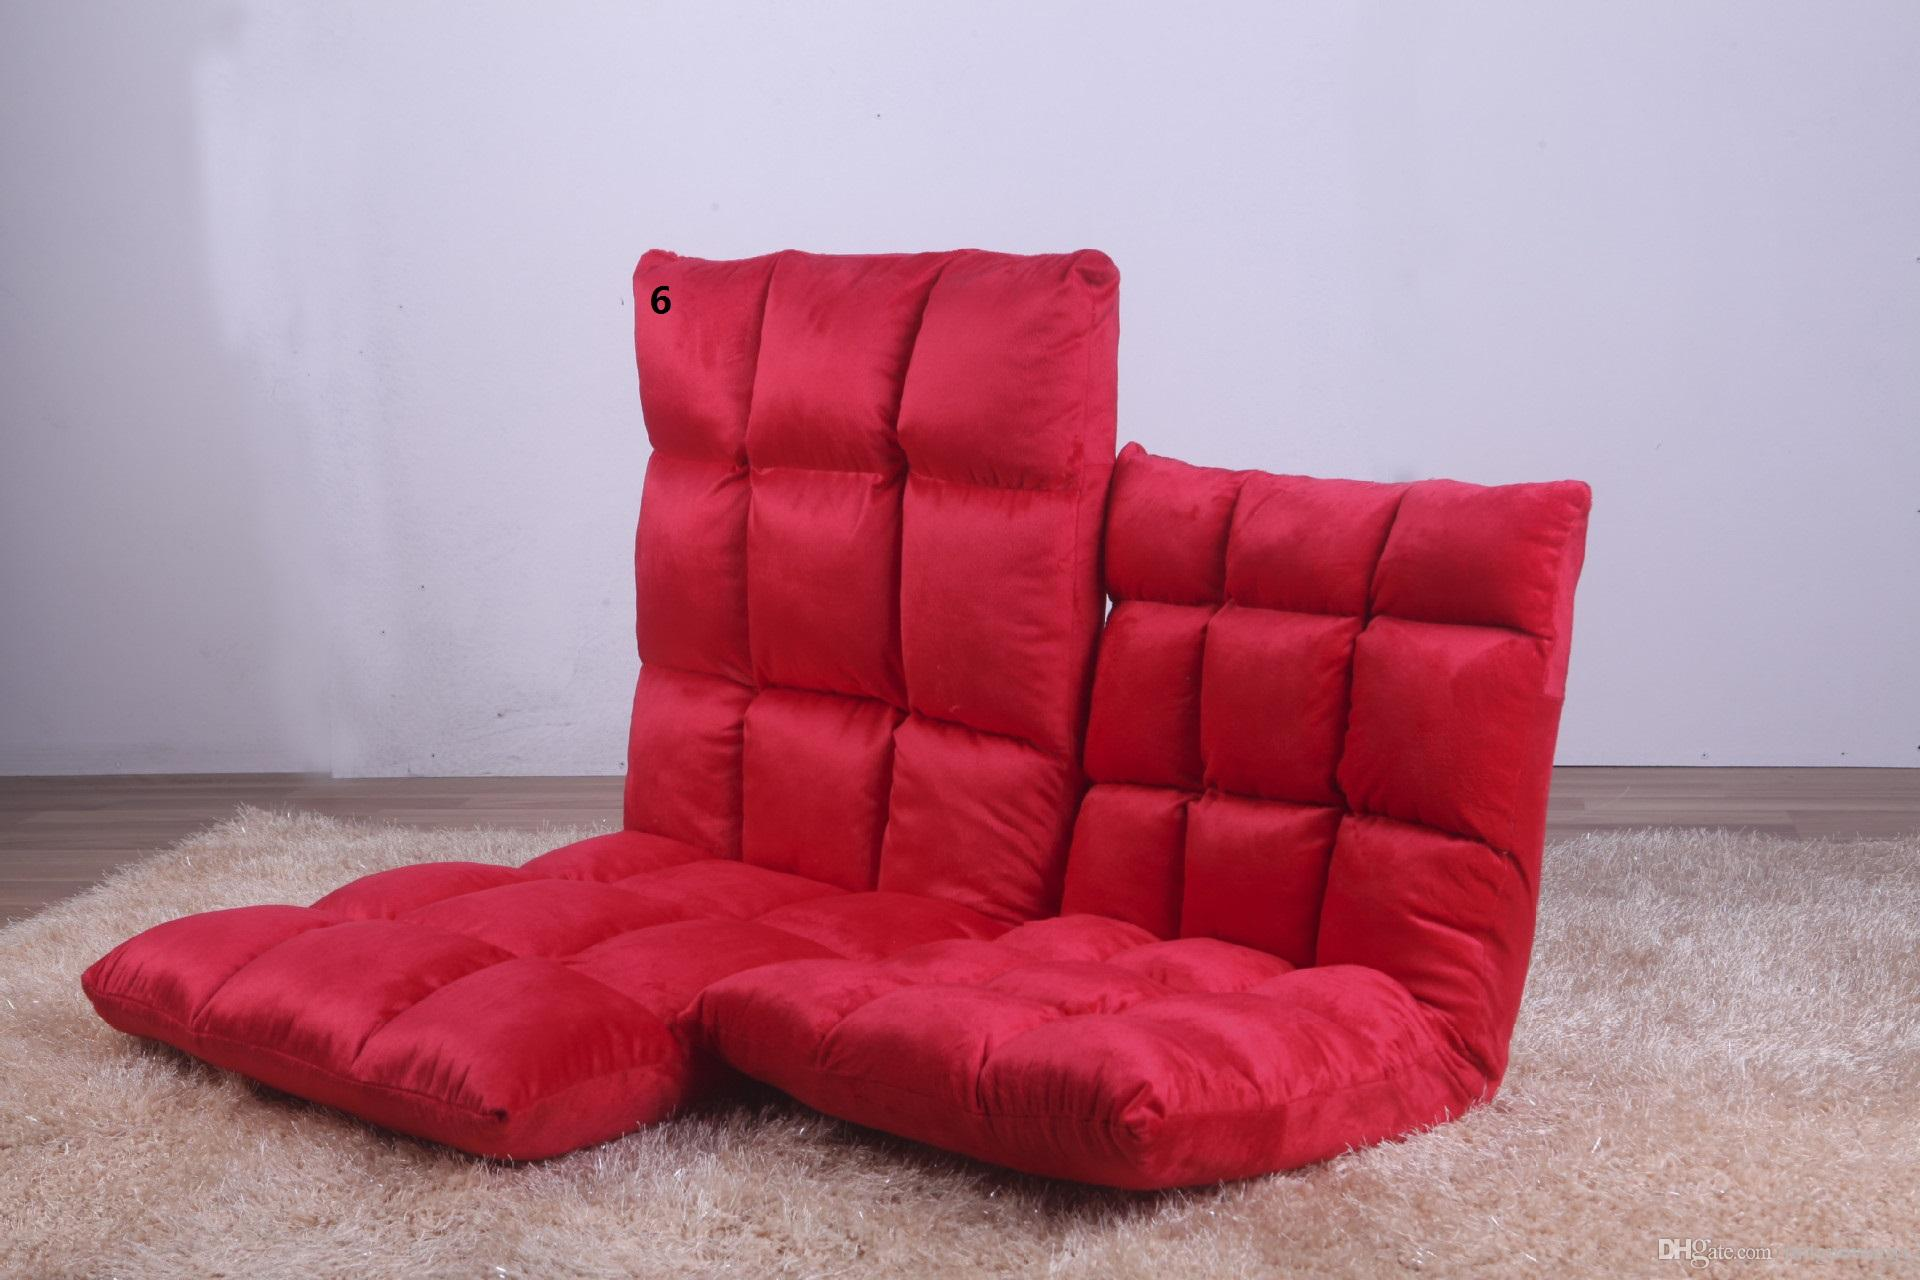 Mini Couch 6 Gears Lazy Sofa Couch Couch Rice Small Single Sofa Chair Folding Bed Floor Window On The Chair Fashion Mini Sofa